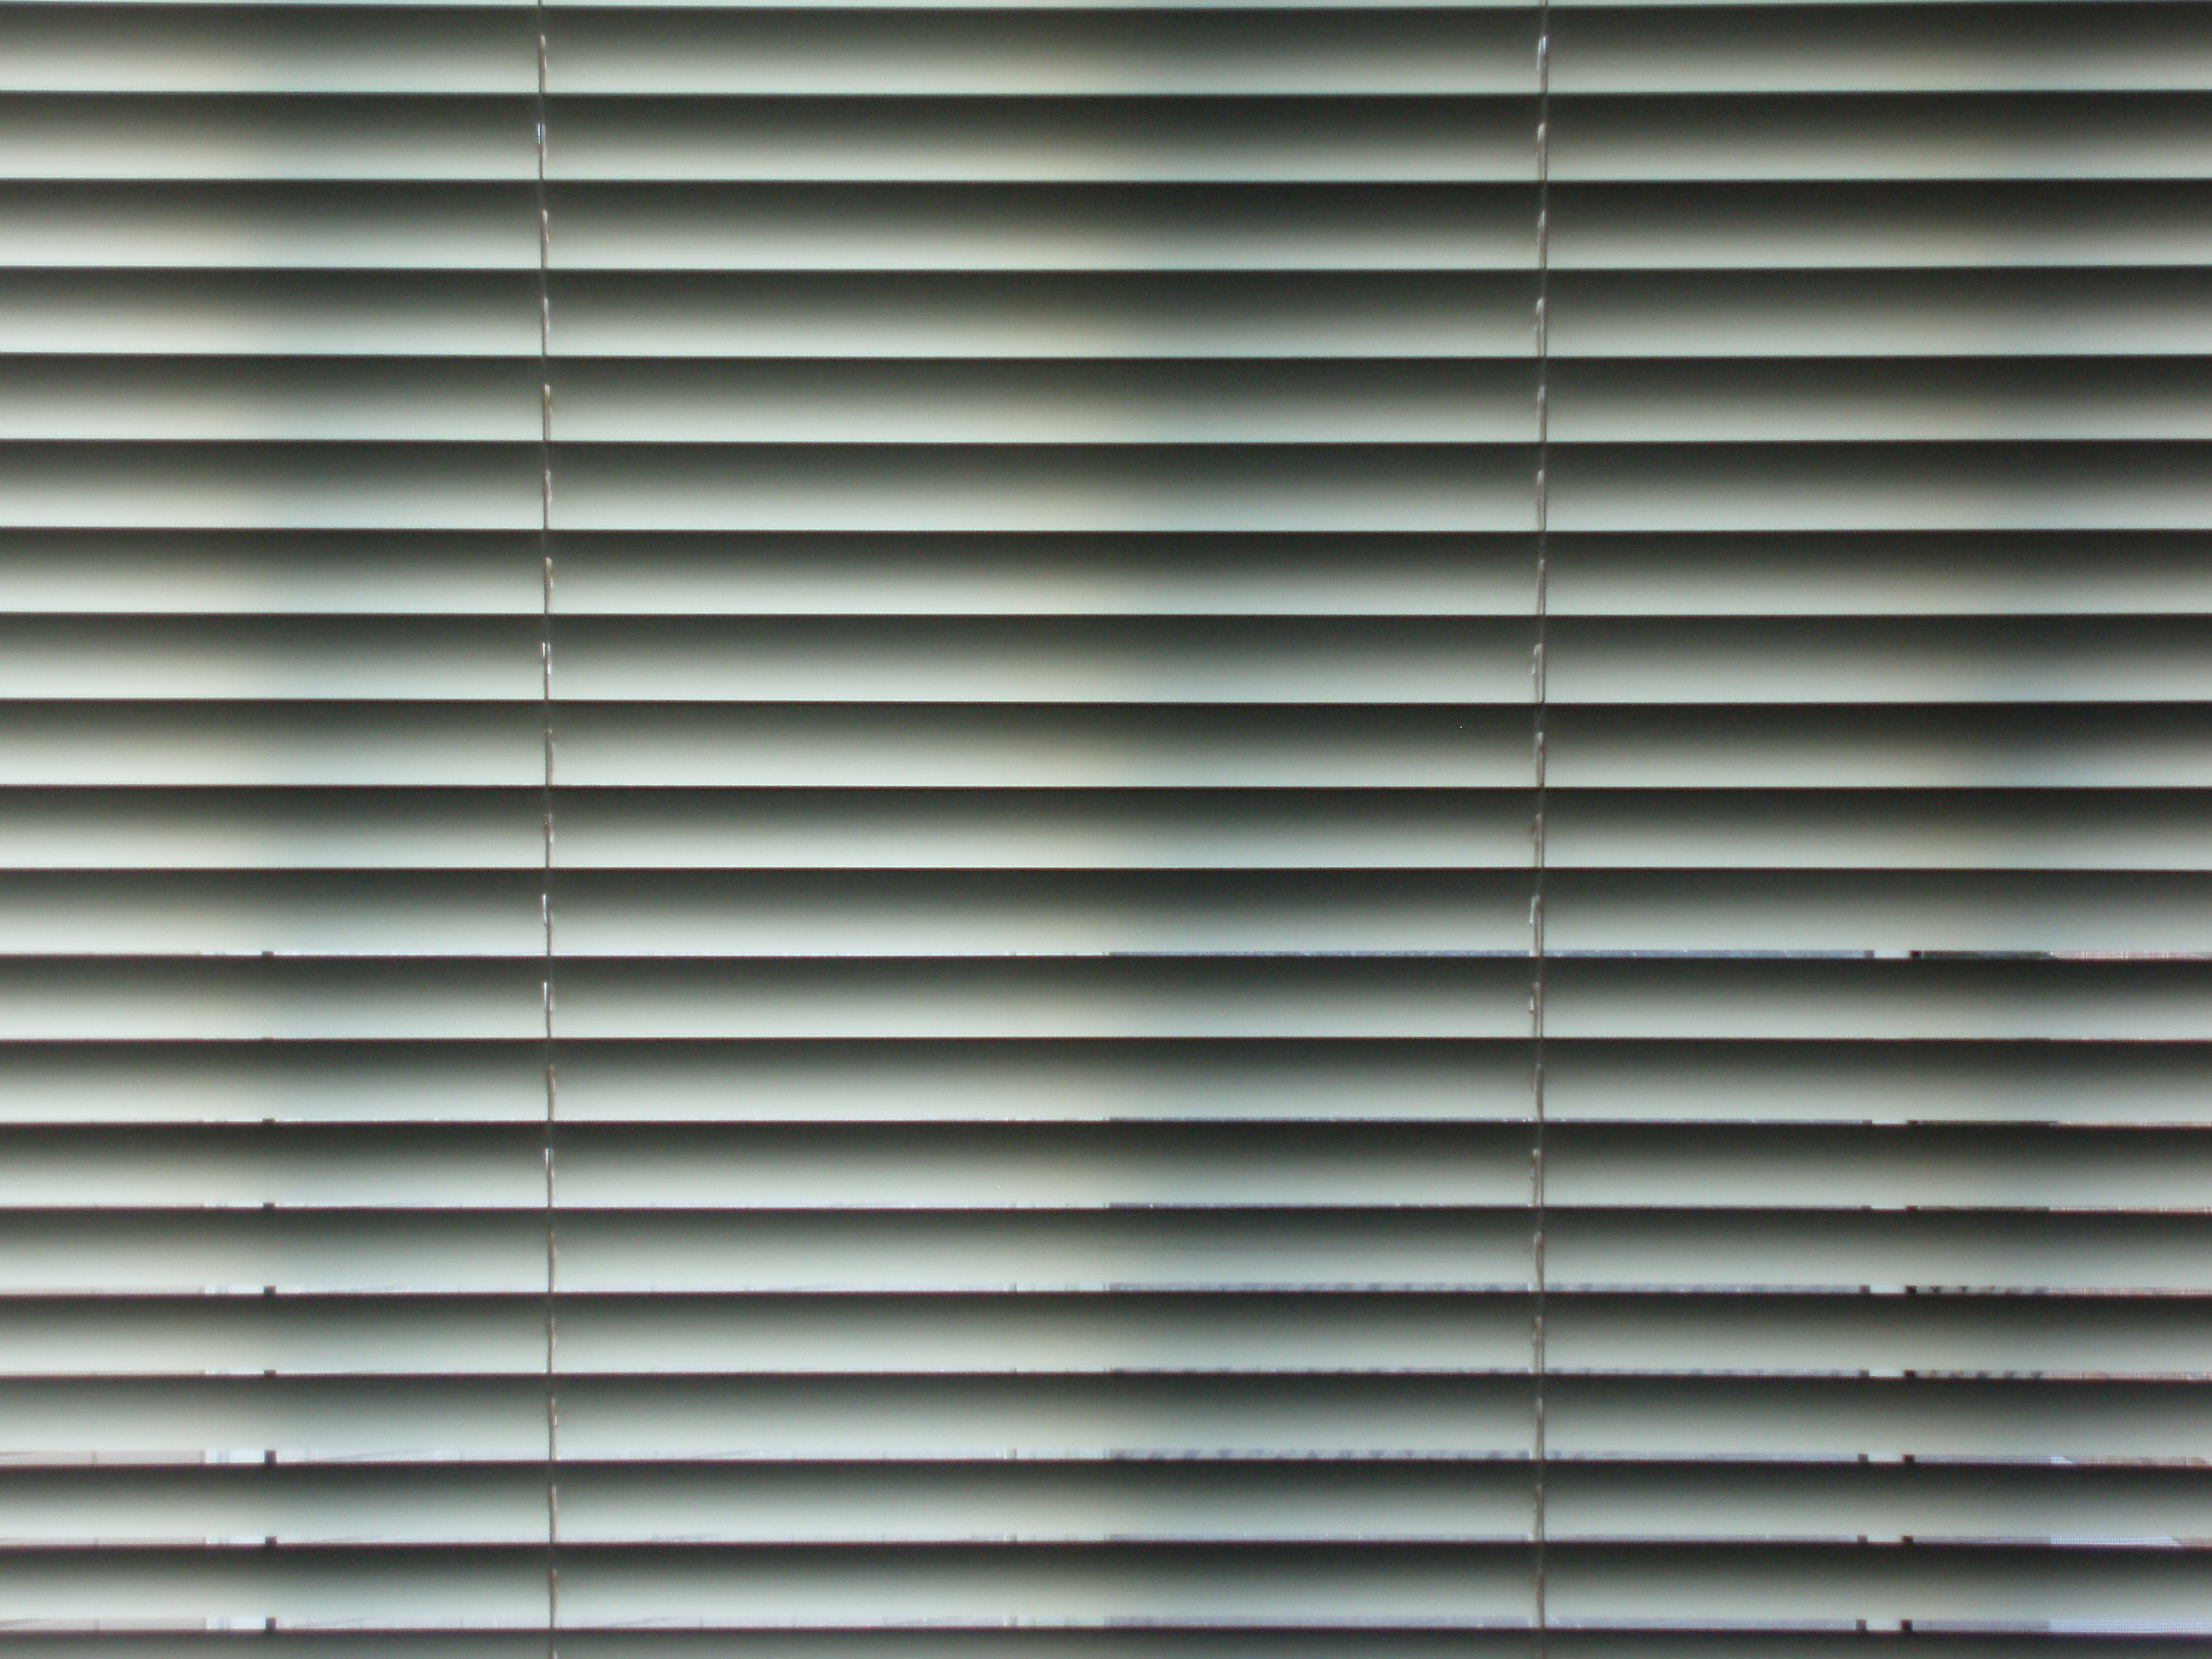 pattern window light shade blind blinds venetian horizontal blinds ...